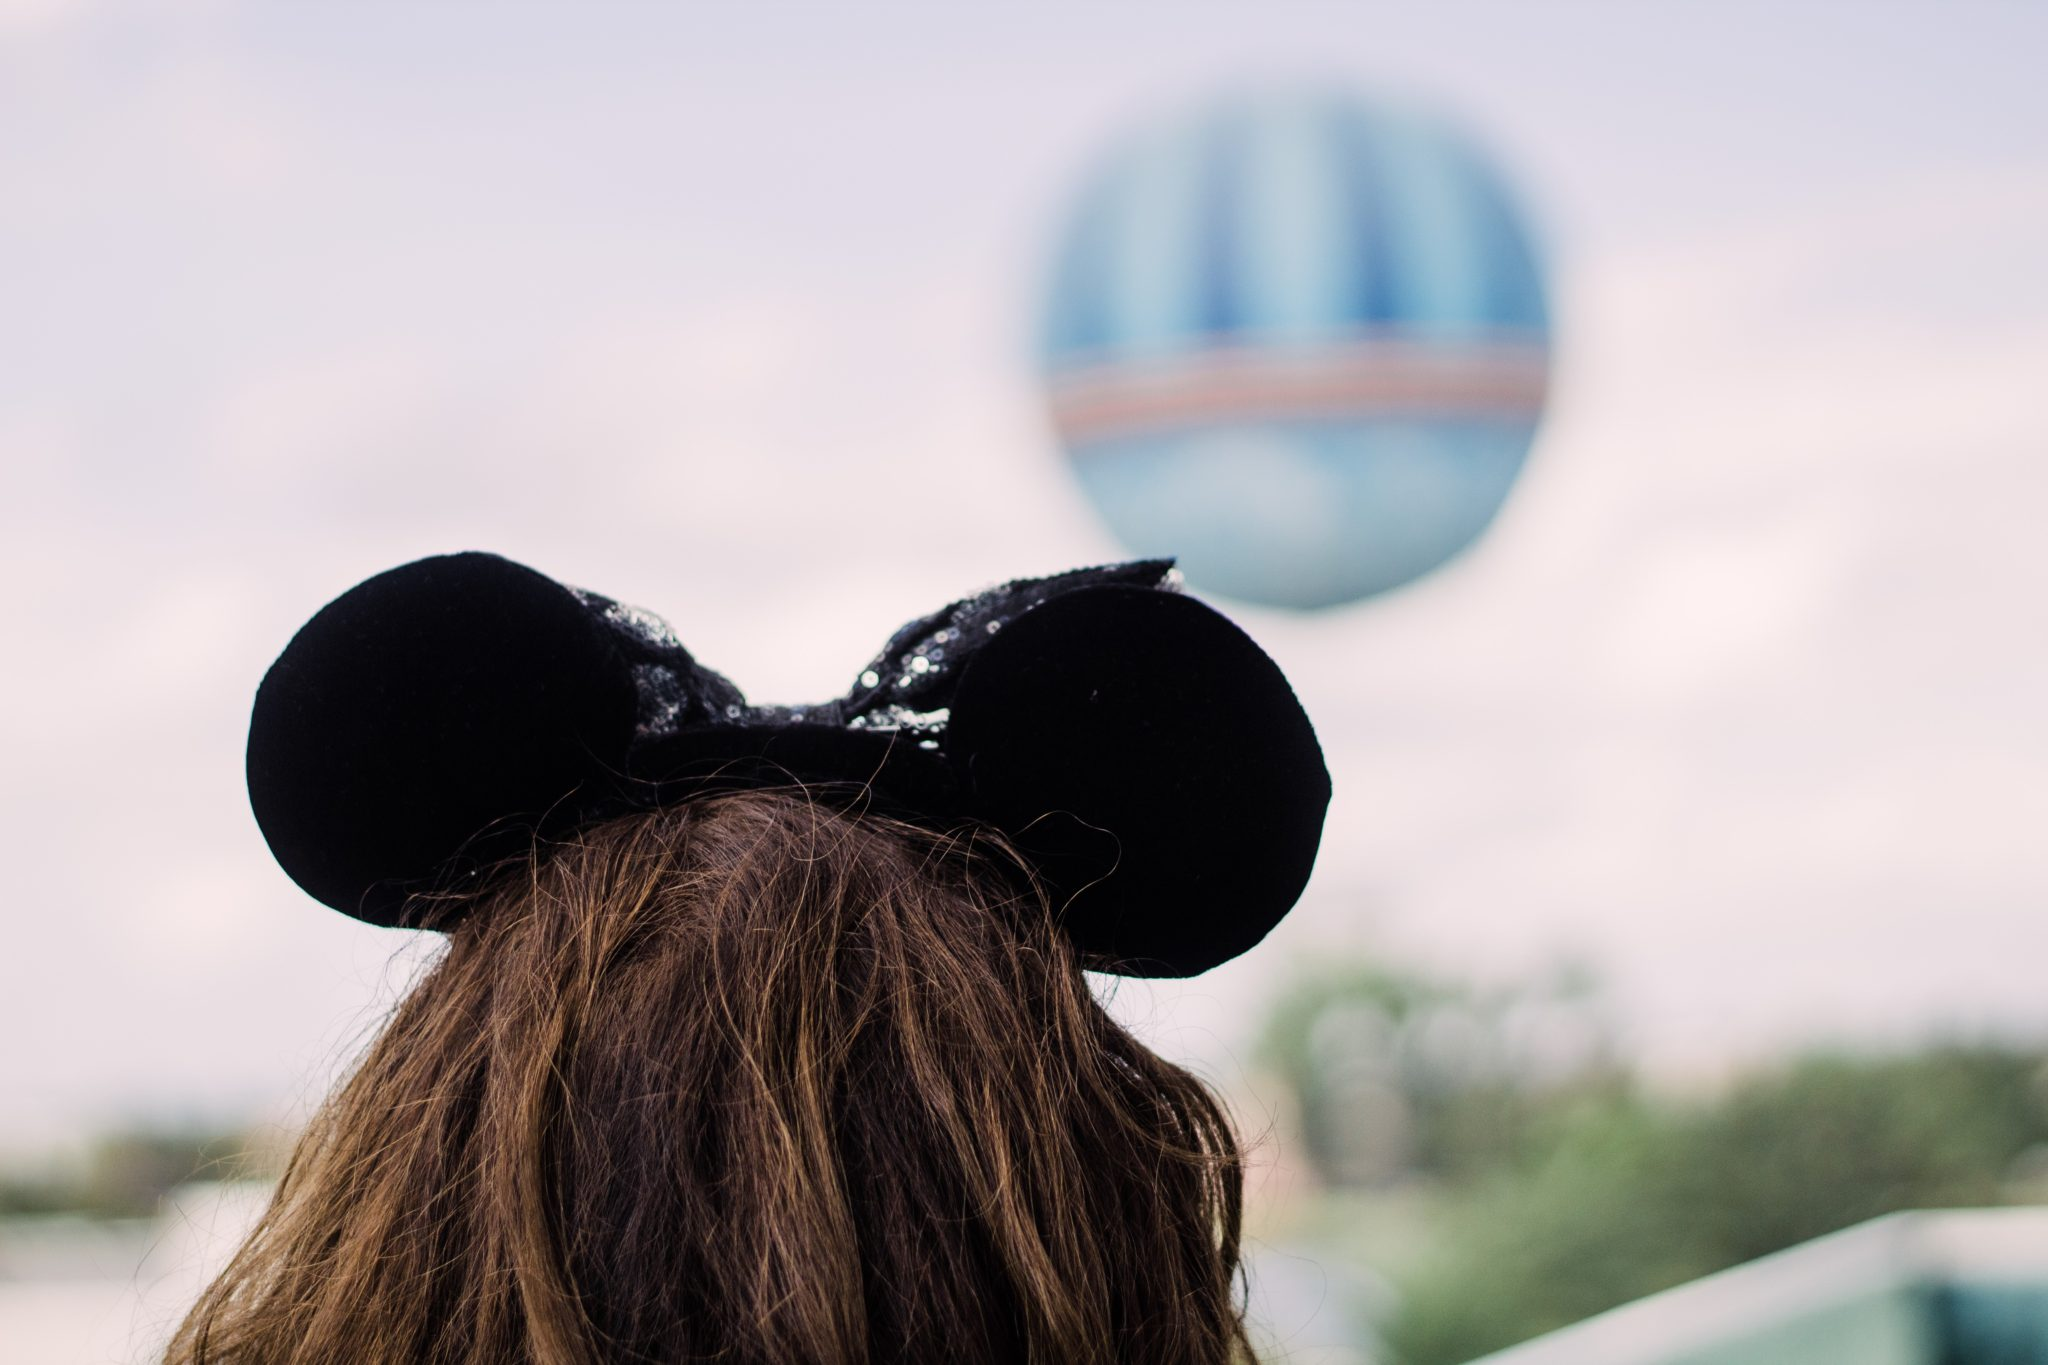 #ad #ShareYourEars for Make-A-Wish, Disney Ears, Mickey's 90th, Disney Springs restaurants and dining, disney world orlando for toddlers, Tampa parenting blog mothers blog motherhood blog Florida travel blogger travel influencer healthy mom blogger spring hill florida lifestyle parenting blog best mom blog 2018